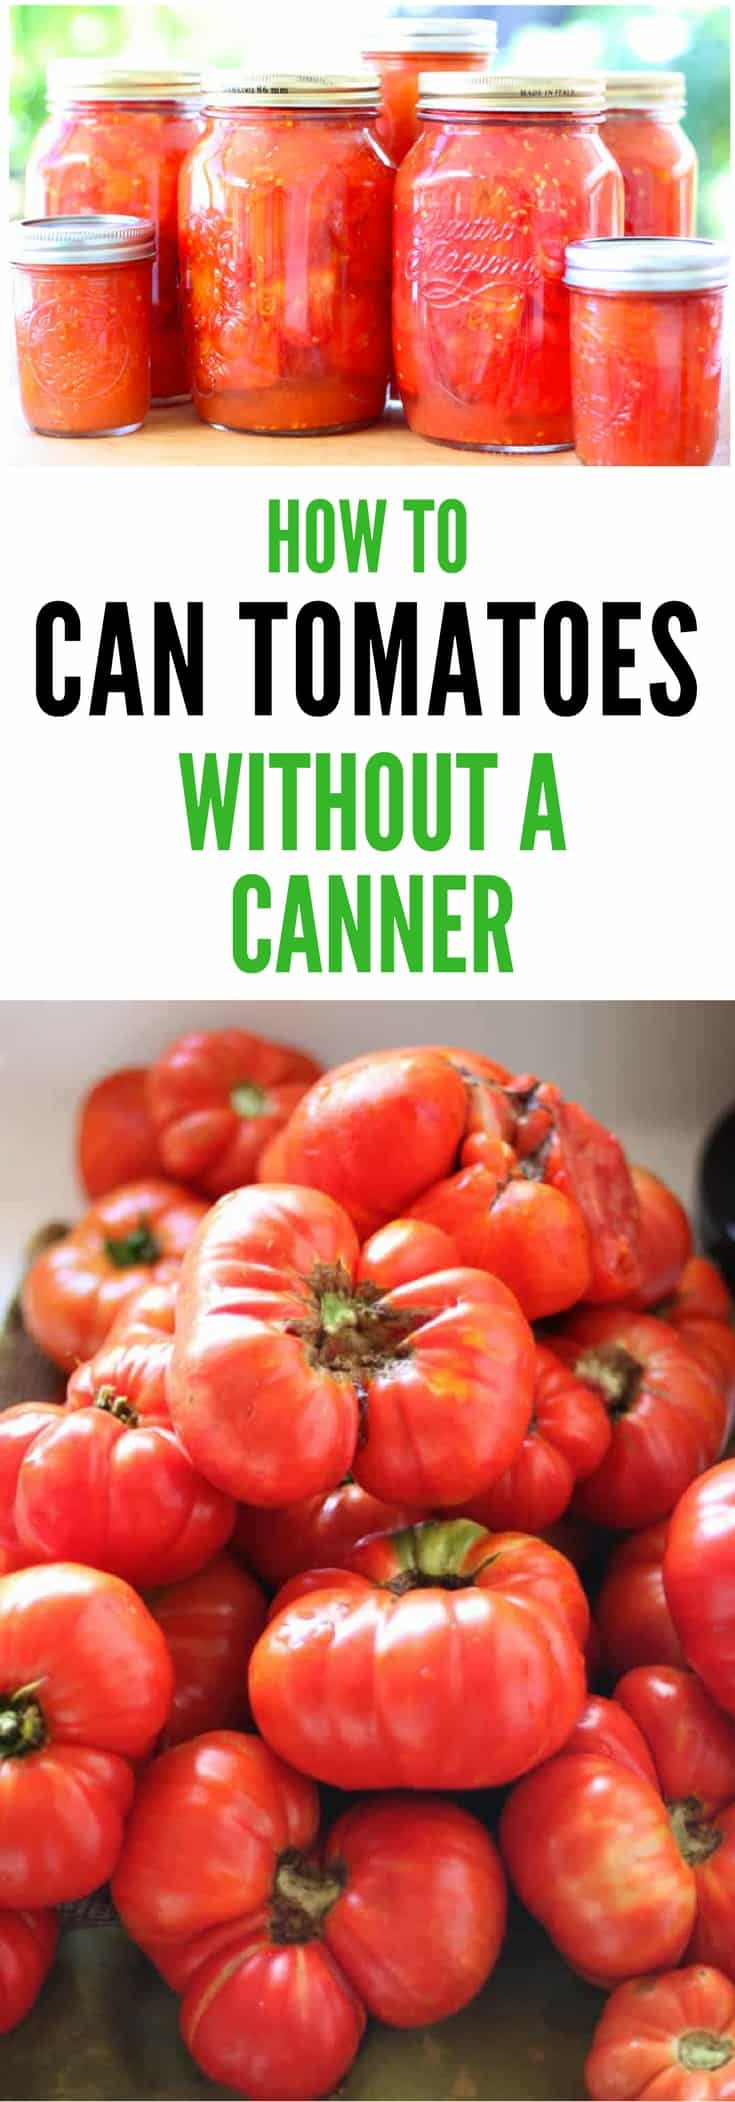 Image of canned tomatoes